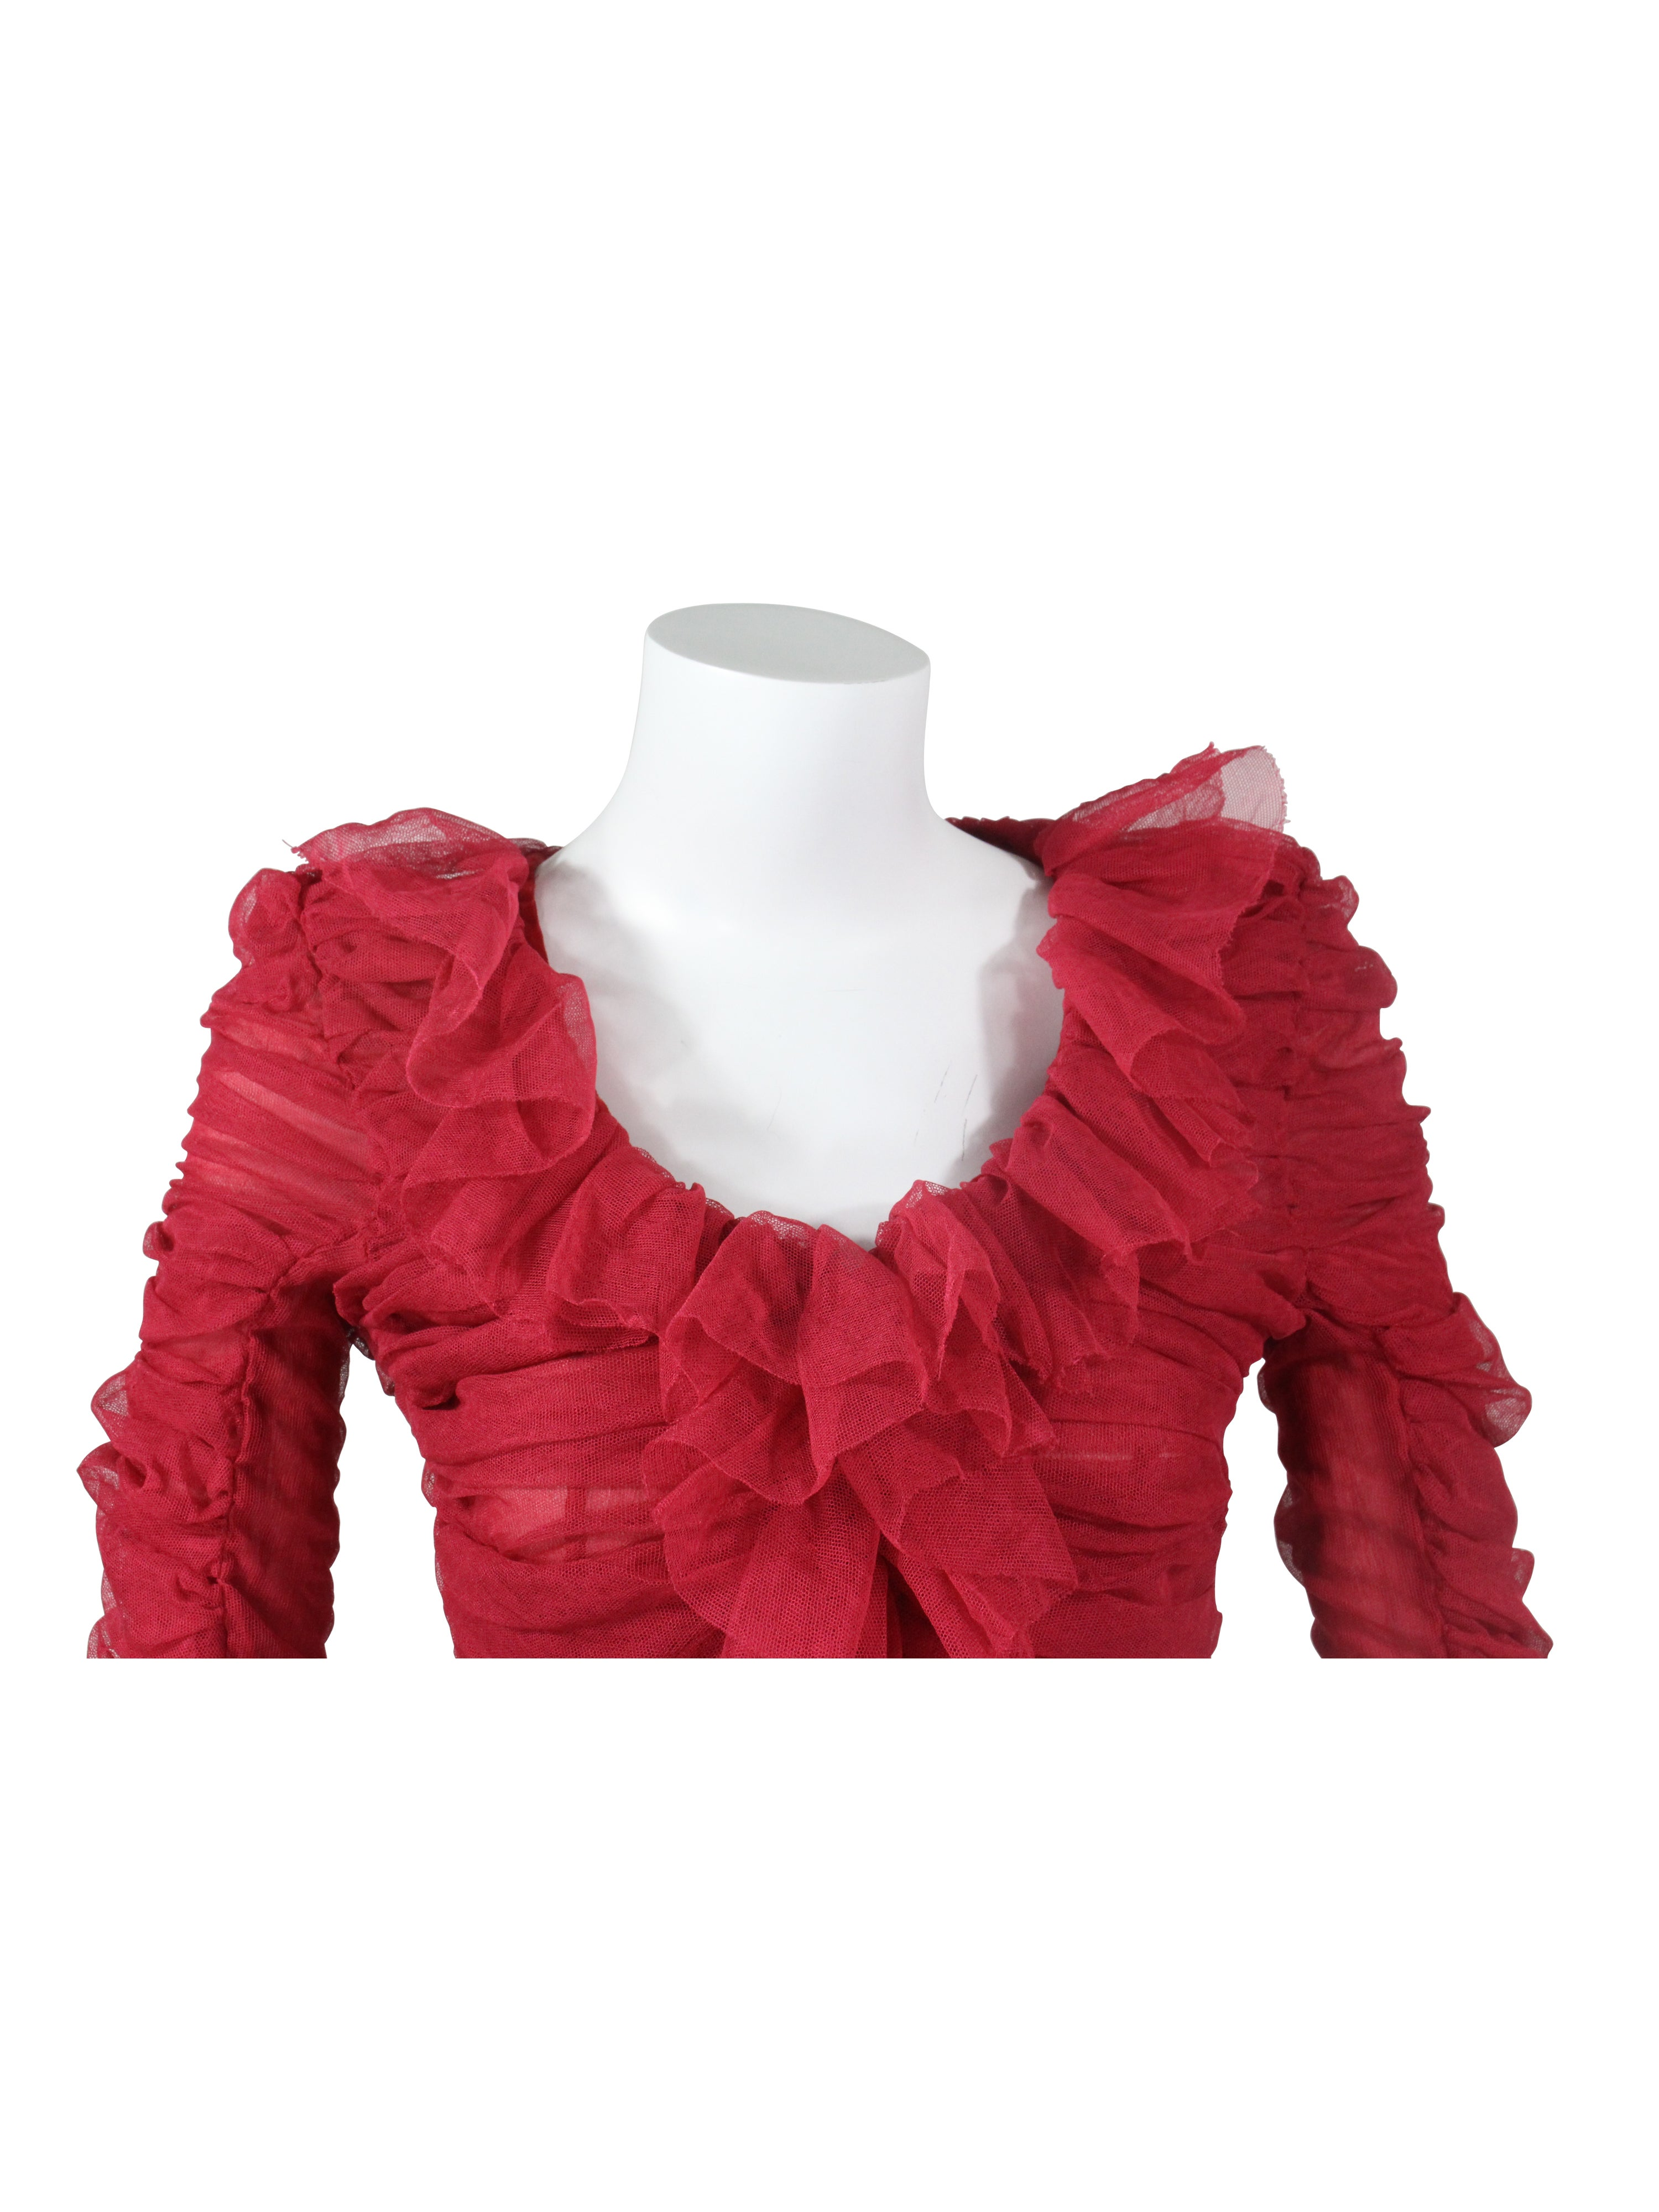 ce3f73adbde2d4 Tom Ford for Yves Saint Laurent Red Ruched Ruffled Silk Top Blouse at  1stdibs